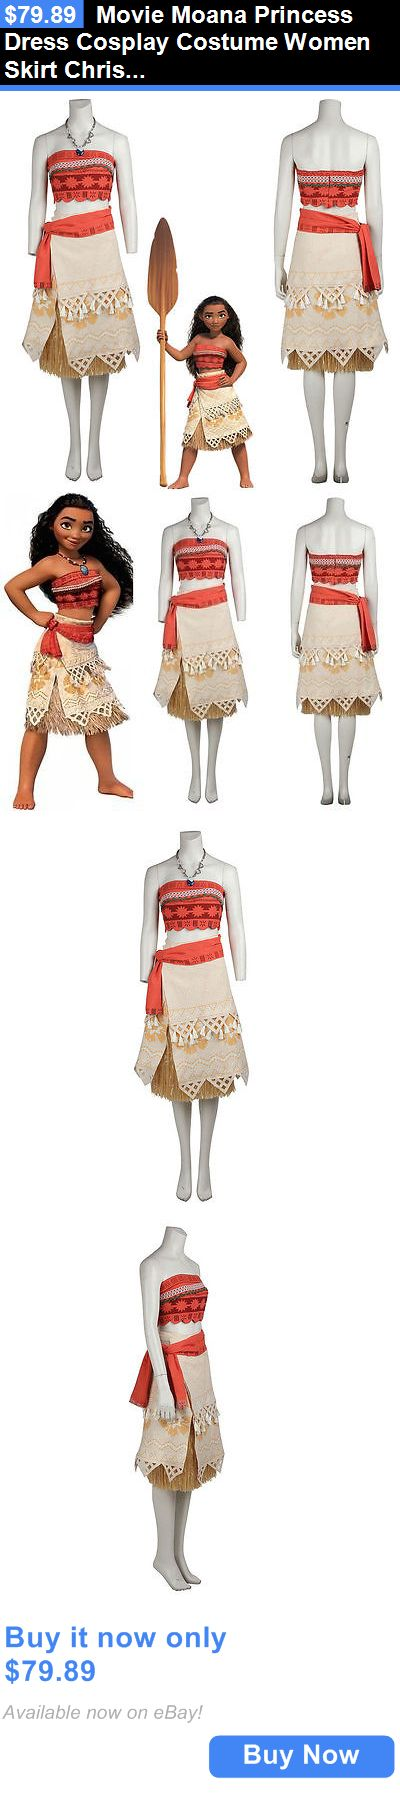 Halloween Costumes Women: Movie Moana Princess Dress Cosplay Costume Women Skirt Christmas Party Dress BUY IT NOW ONLY: $79.89